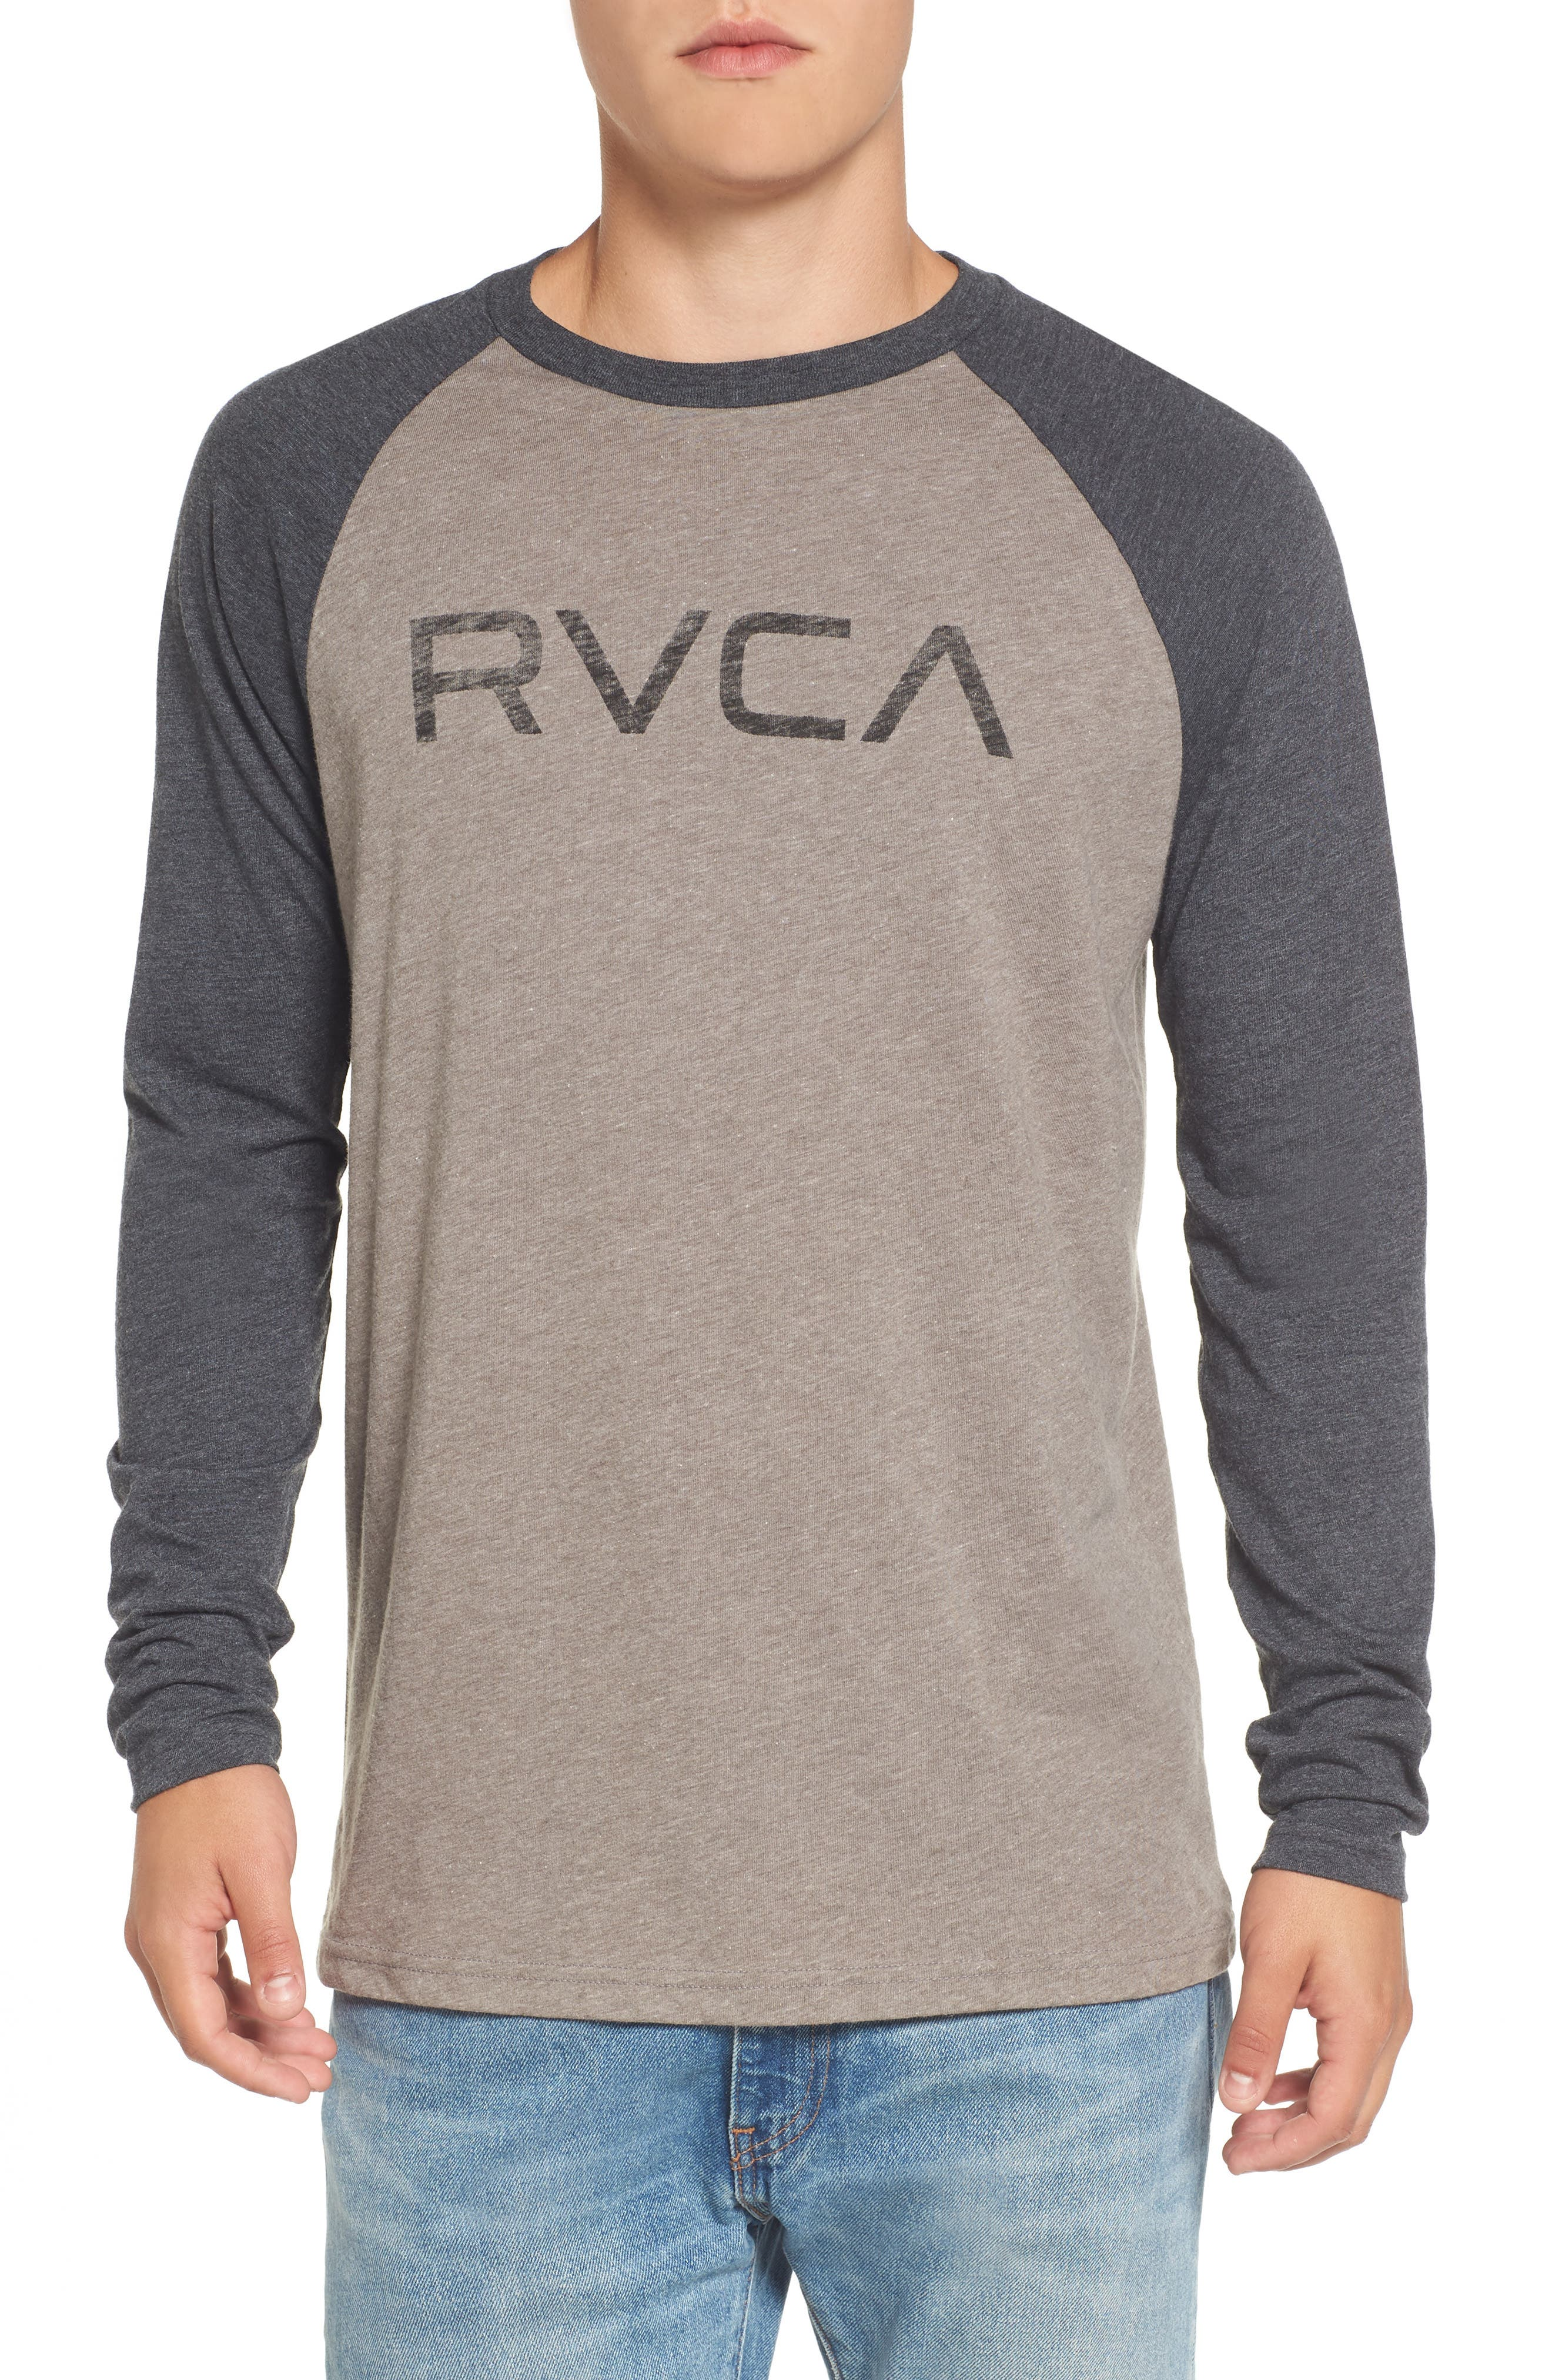 RVCA Logo Graphic Long Sleeve T-Shirt